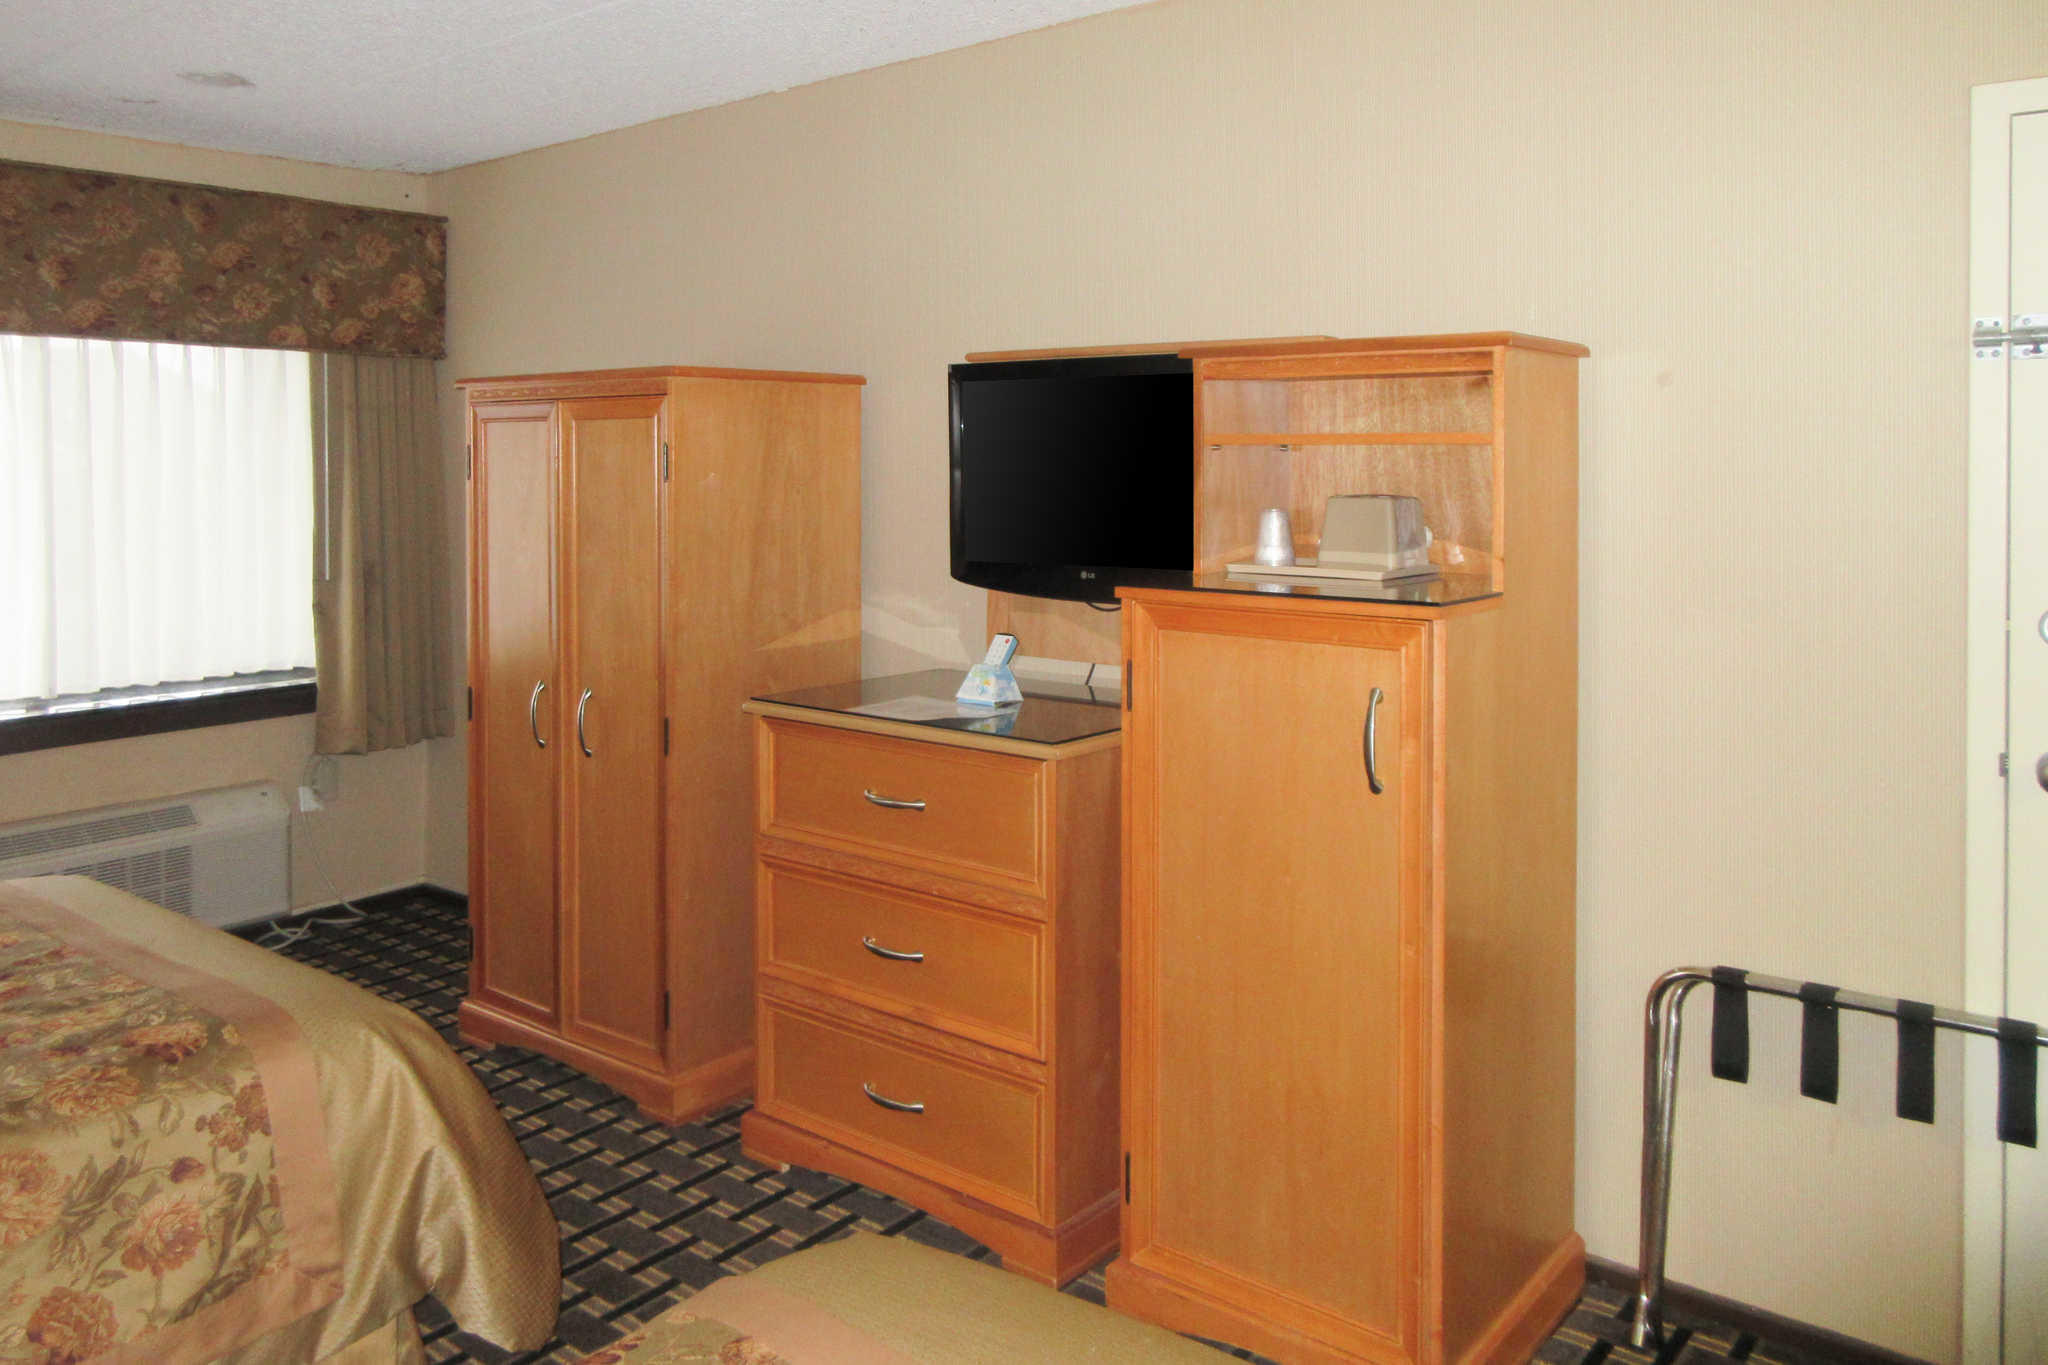 Econo Lodge image 2